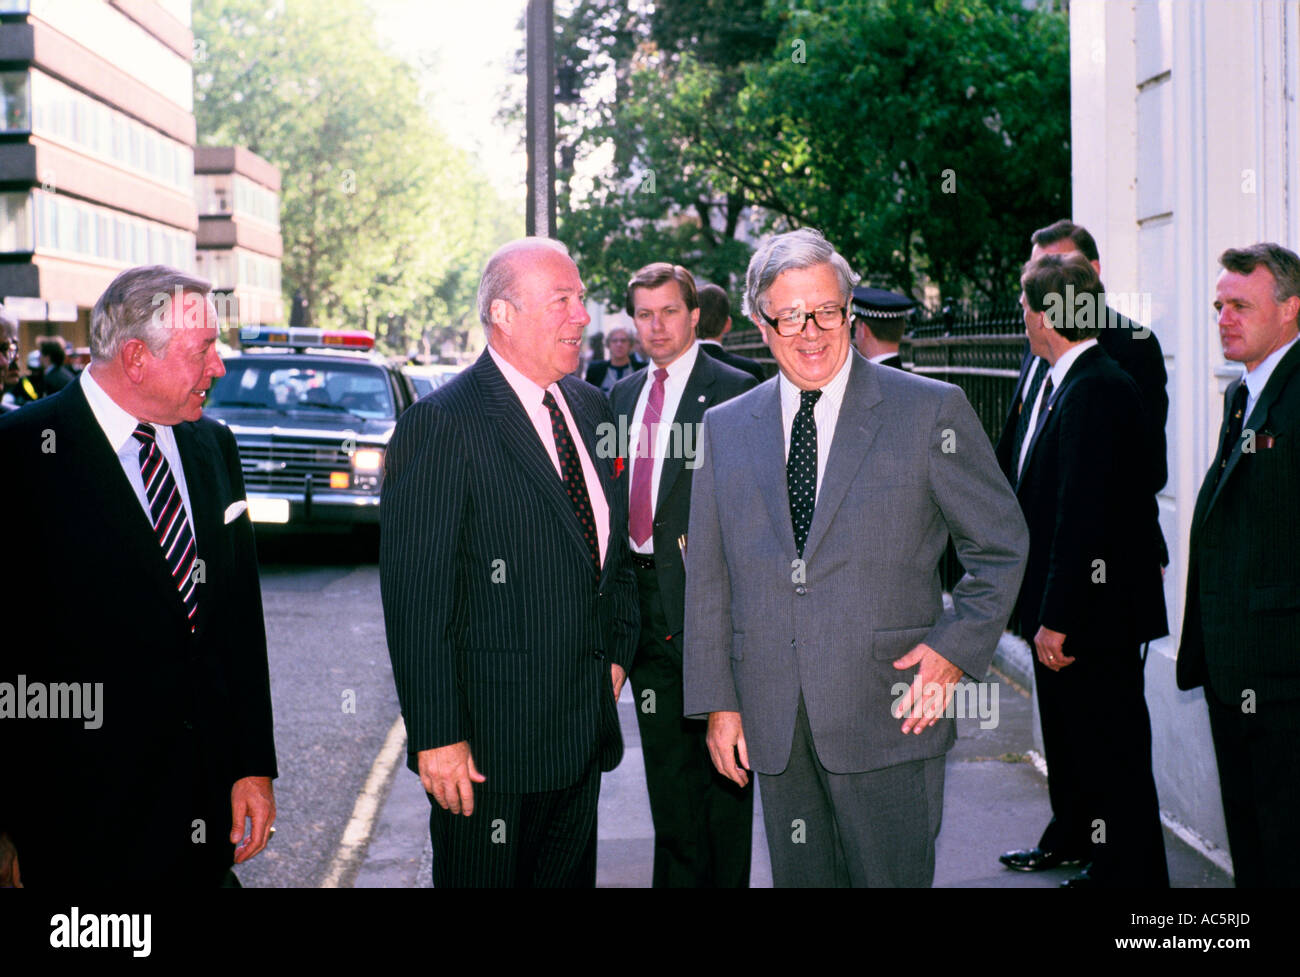 GEOFFREY HOWE AND GEORGE SCHULTZ SEC OF STATE USA IN LONDON 1988 - Stock Image